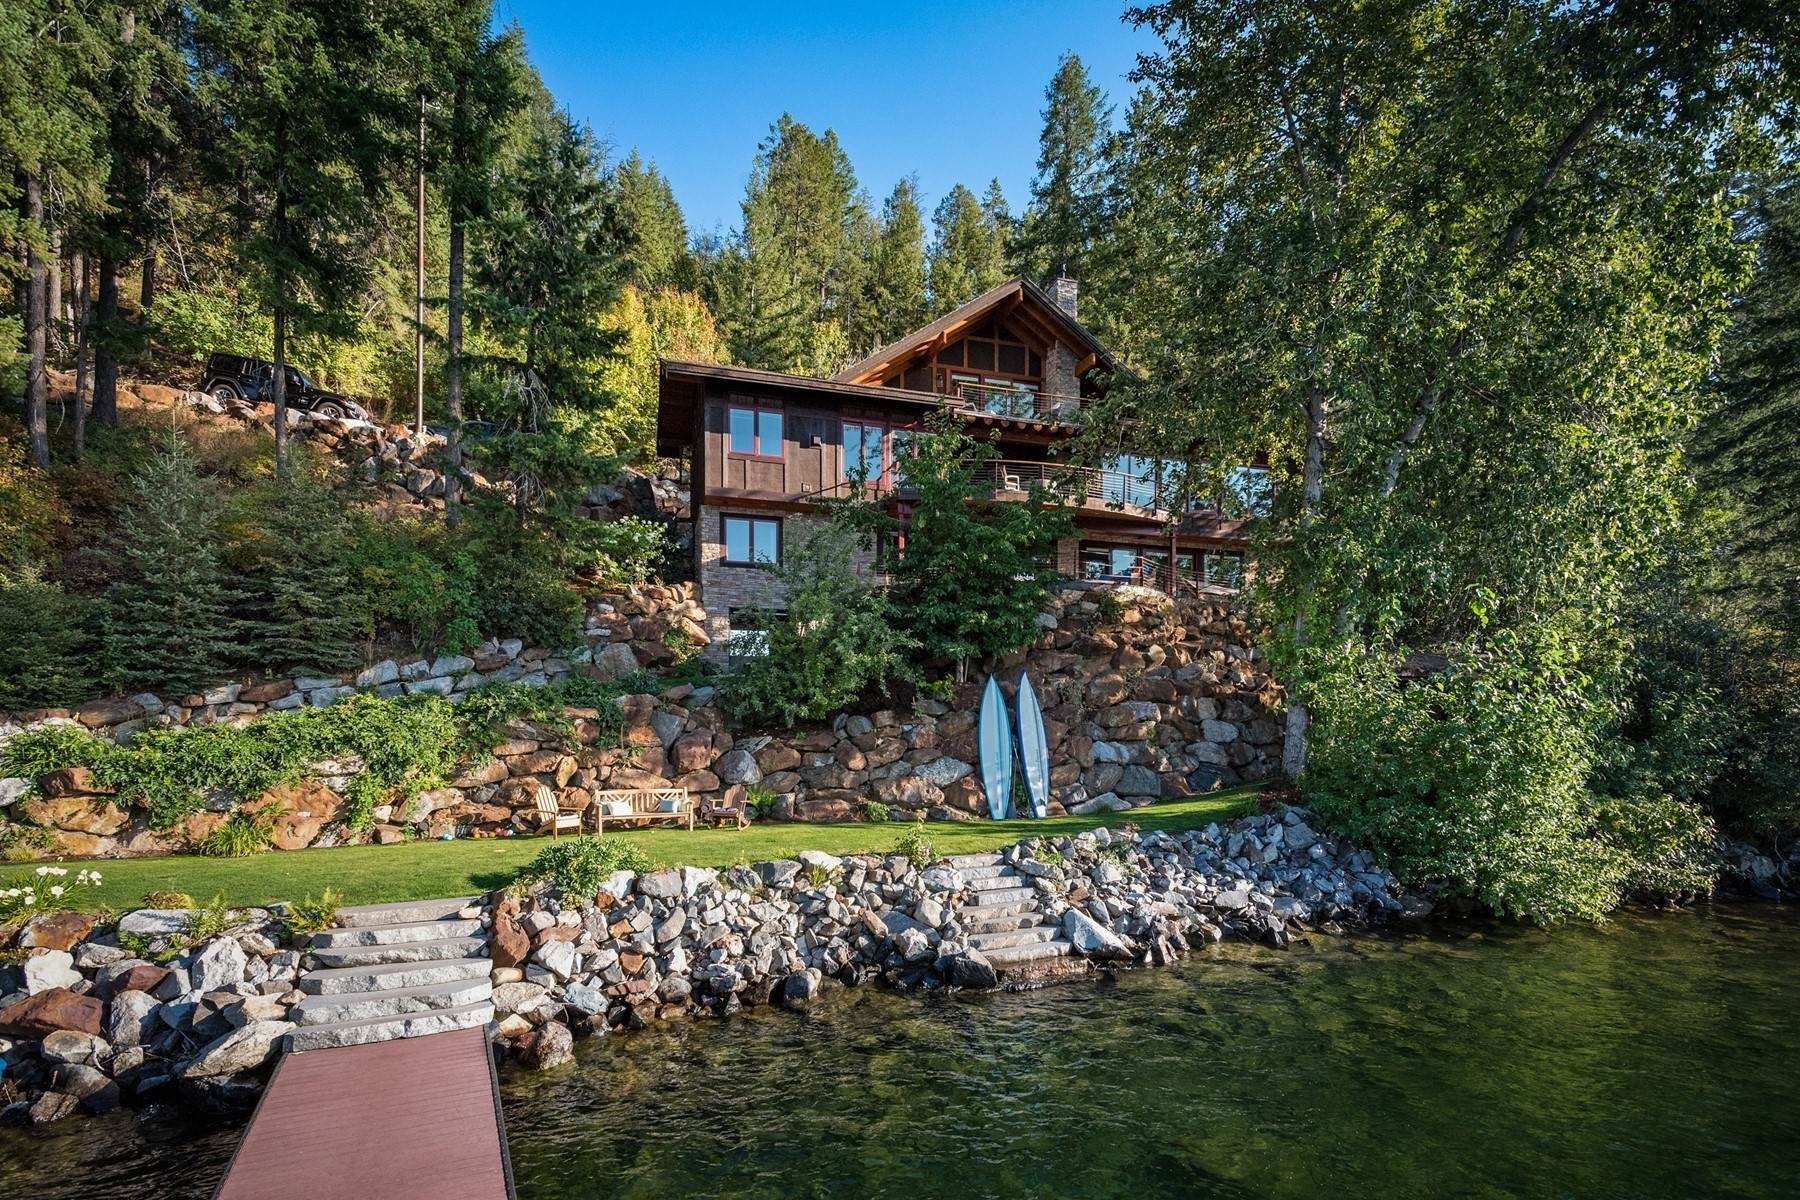 Single Family Homes for Sale at Contemporary Lake Pend Oreille Waterfront 3161 Bottle Bay Dr, Sagle, Idaho, 83860 United States